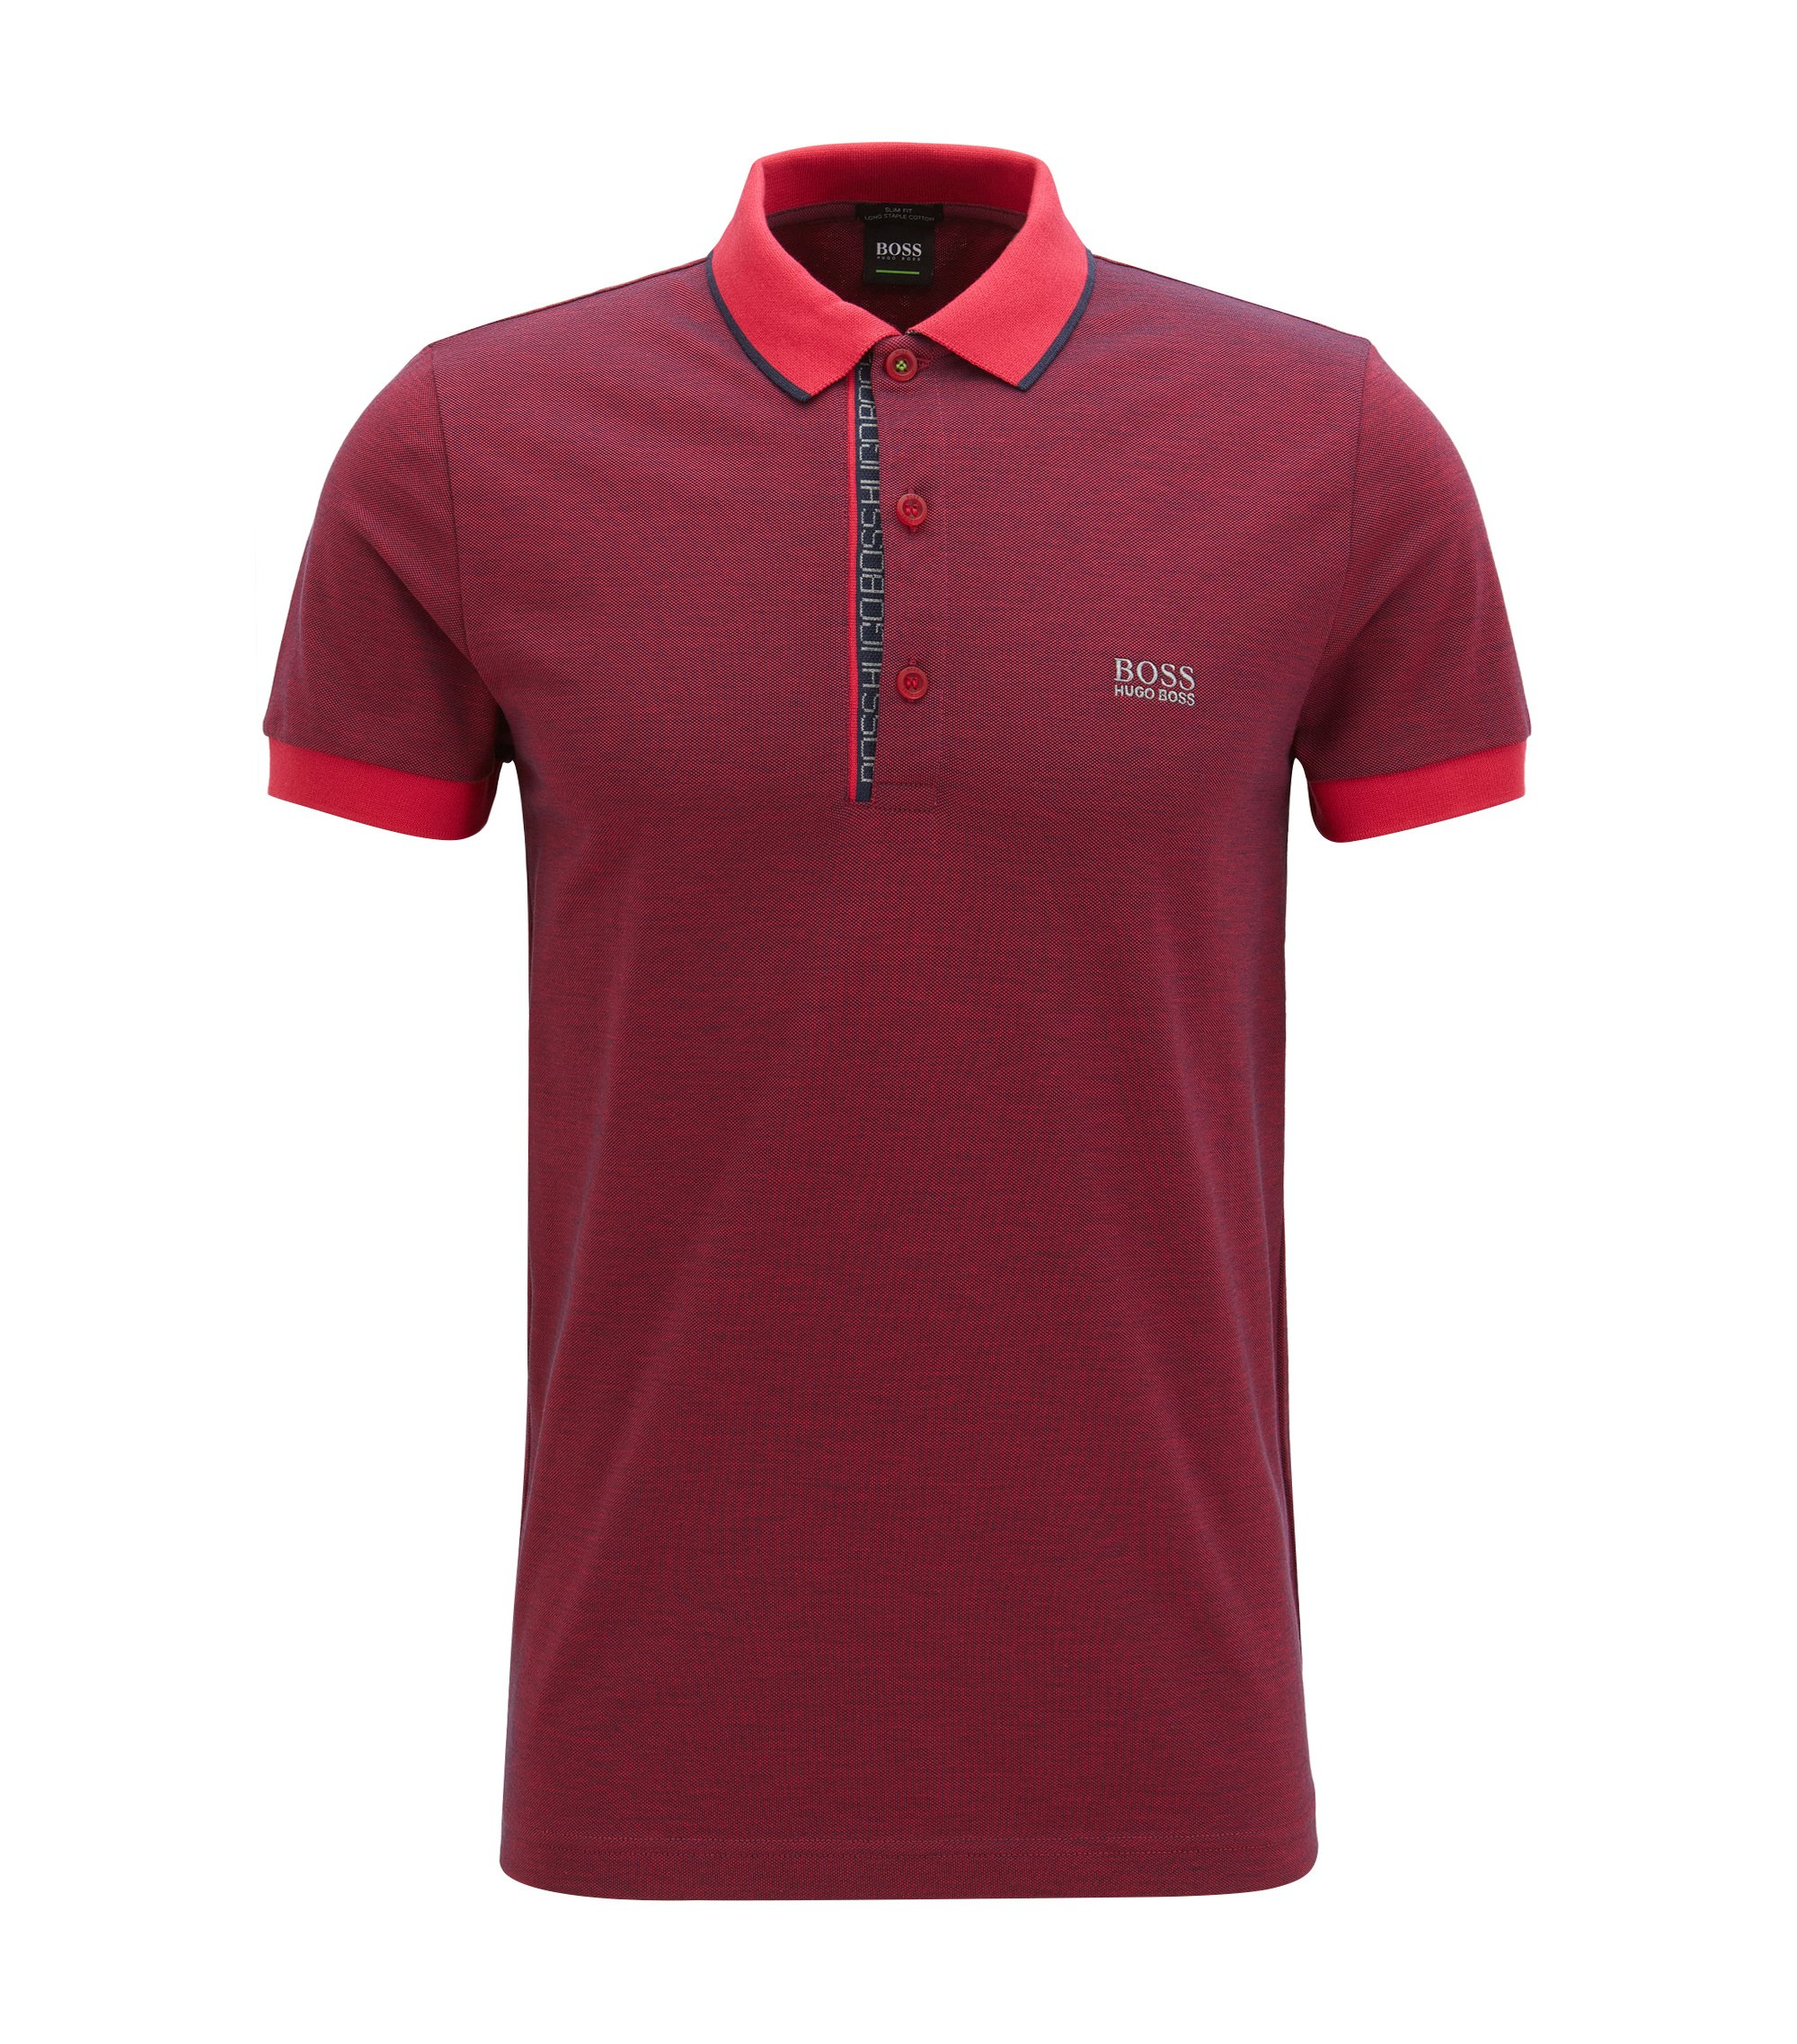 Oxfotd Cotton Polo Shirt, Slim Fit | Paule, Pink